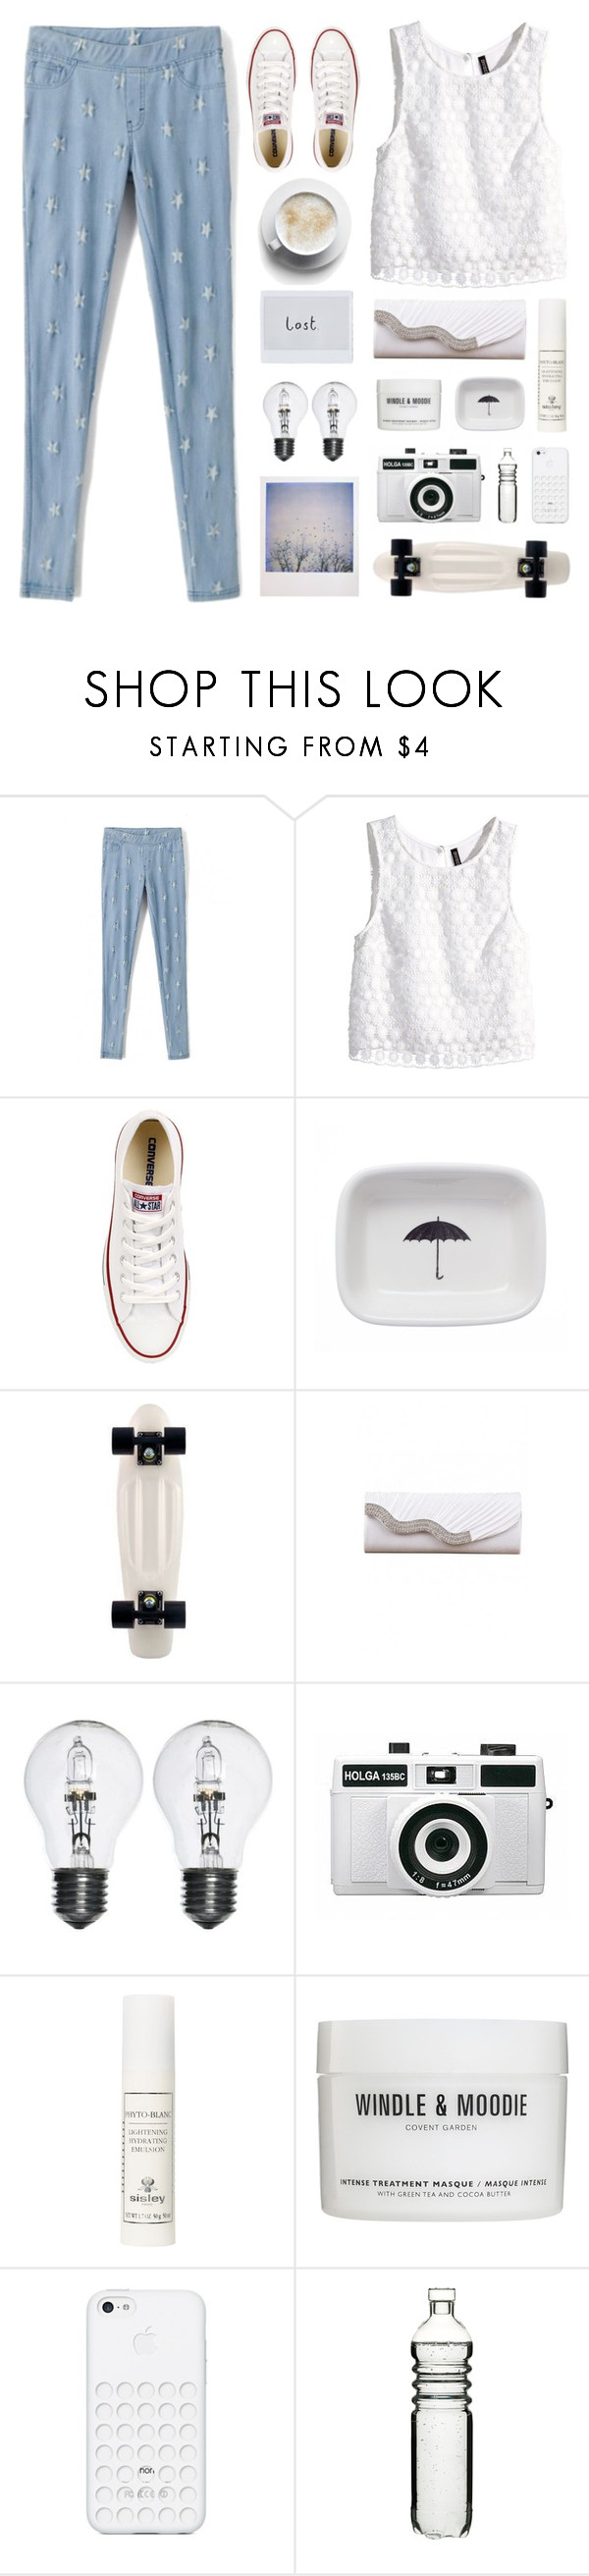 """""""Heaven waits for those who run -"""" by rockylune ❤ liked on Polyvore featuring H&M, Converse, Izola, Polaroid, Holga, Windle & Moodie, Black Apple, Sagaform and lucluc"""